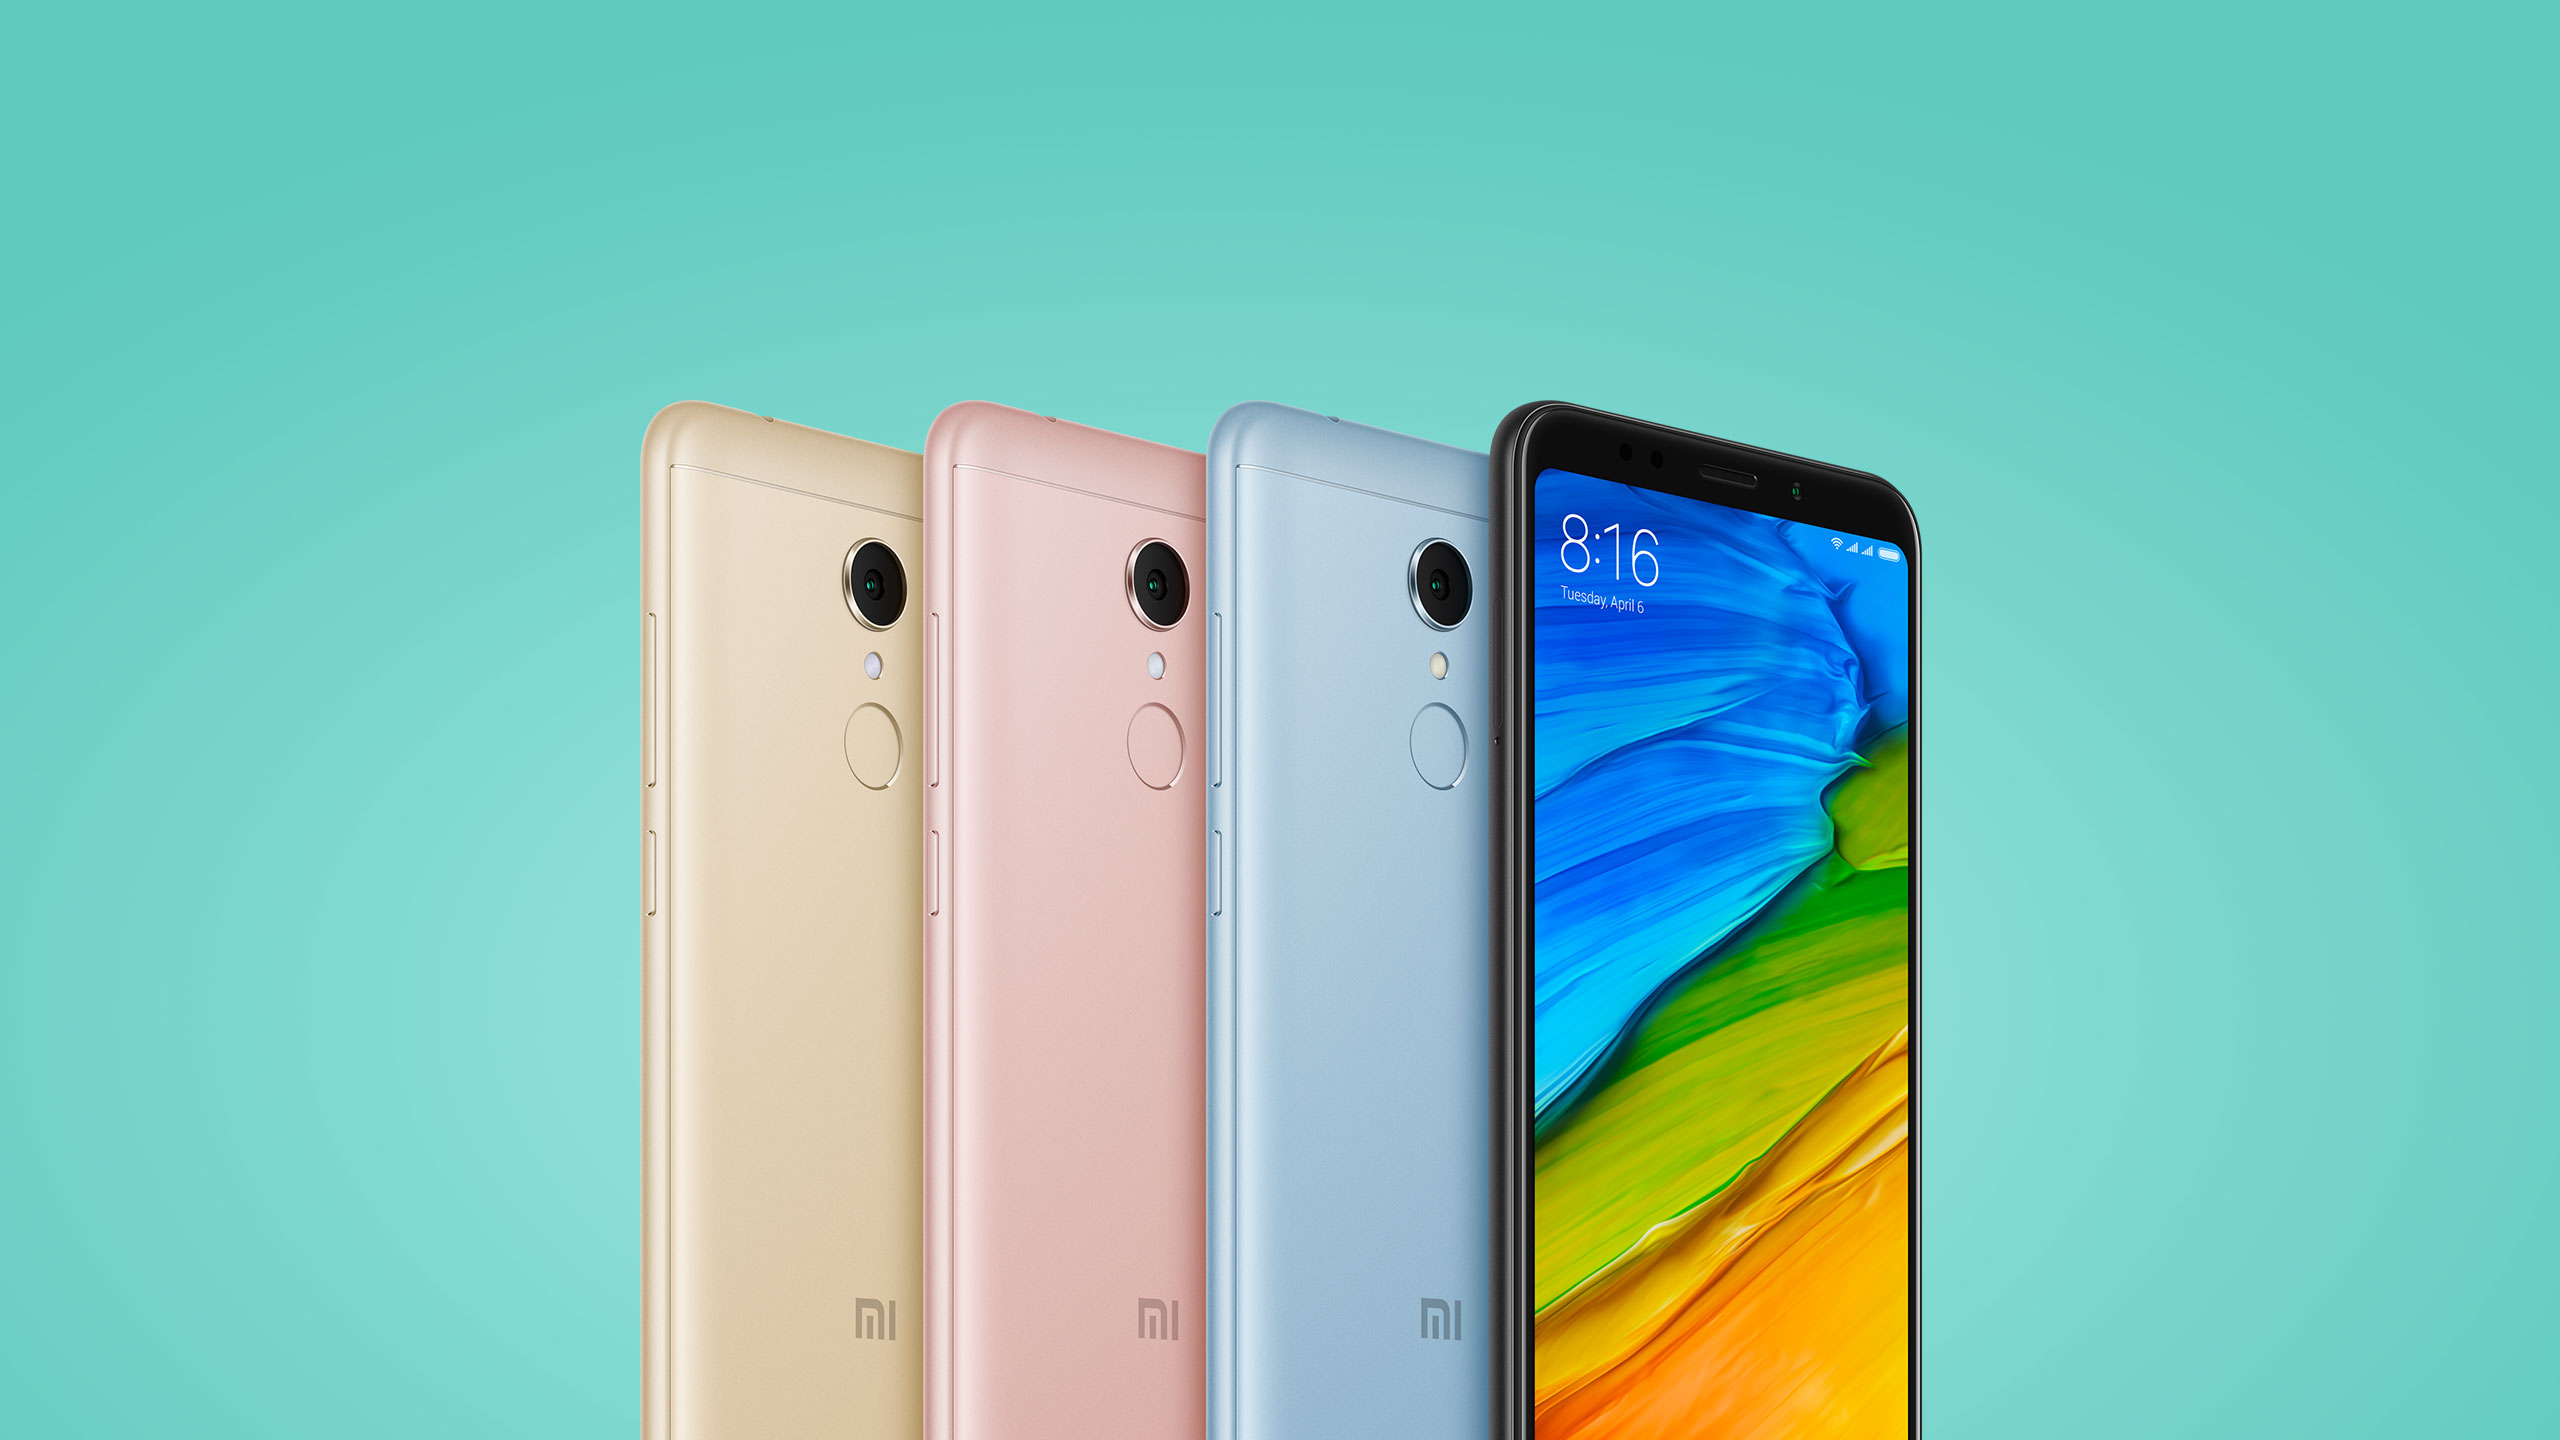 bbf4dbdc96a Redmi 5 Price and Features - Mi India